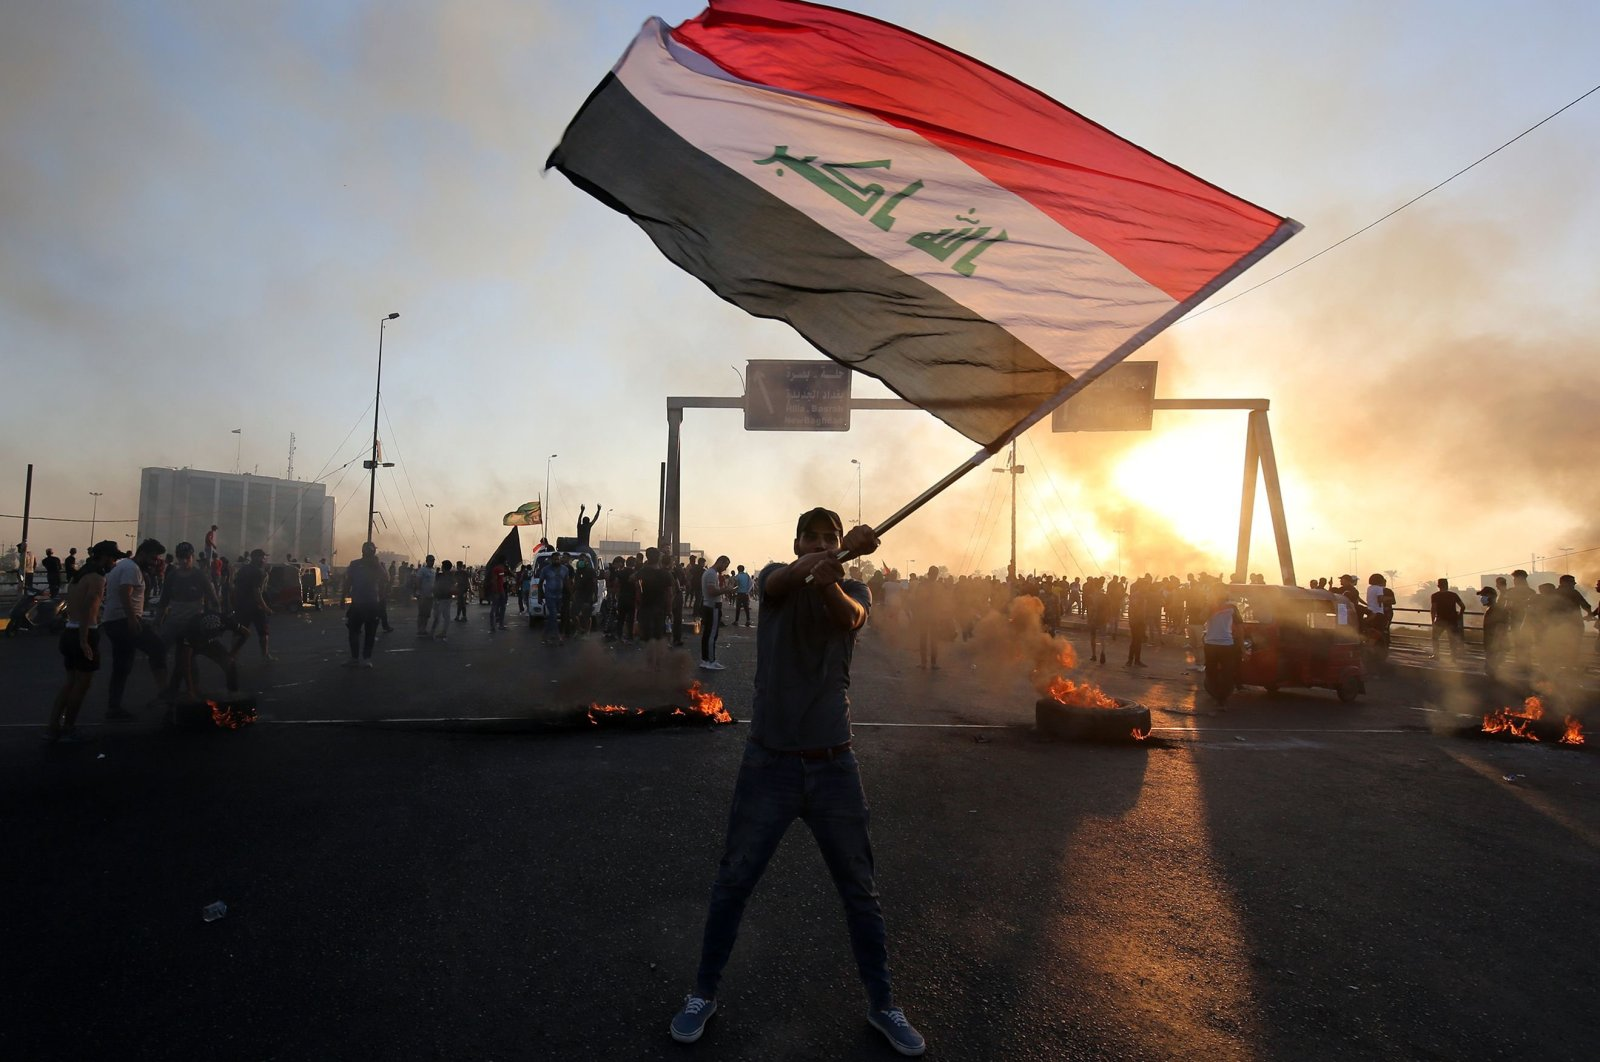 An Iraqi protester waves the national flag during a demonstration against state corruption, failing public services and unemployment in the Iraqi capital Baghdad, Oct. 5, 2019. (AFP Photo)